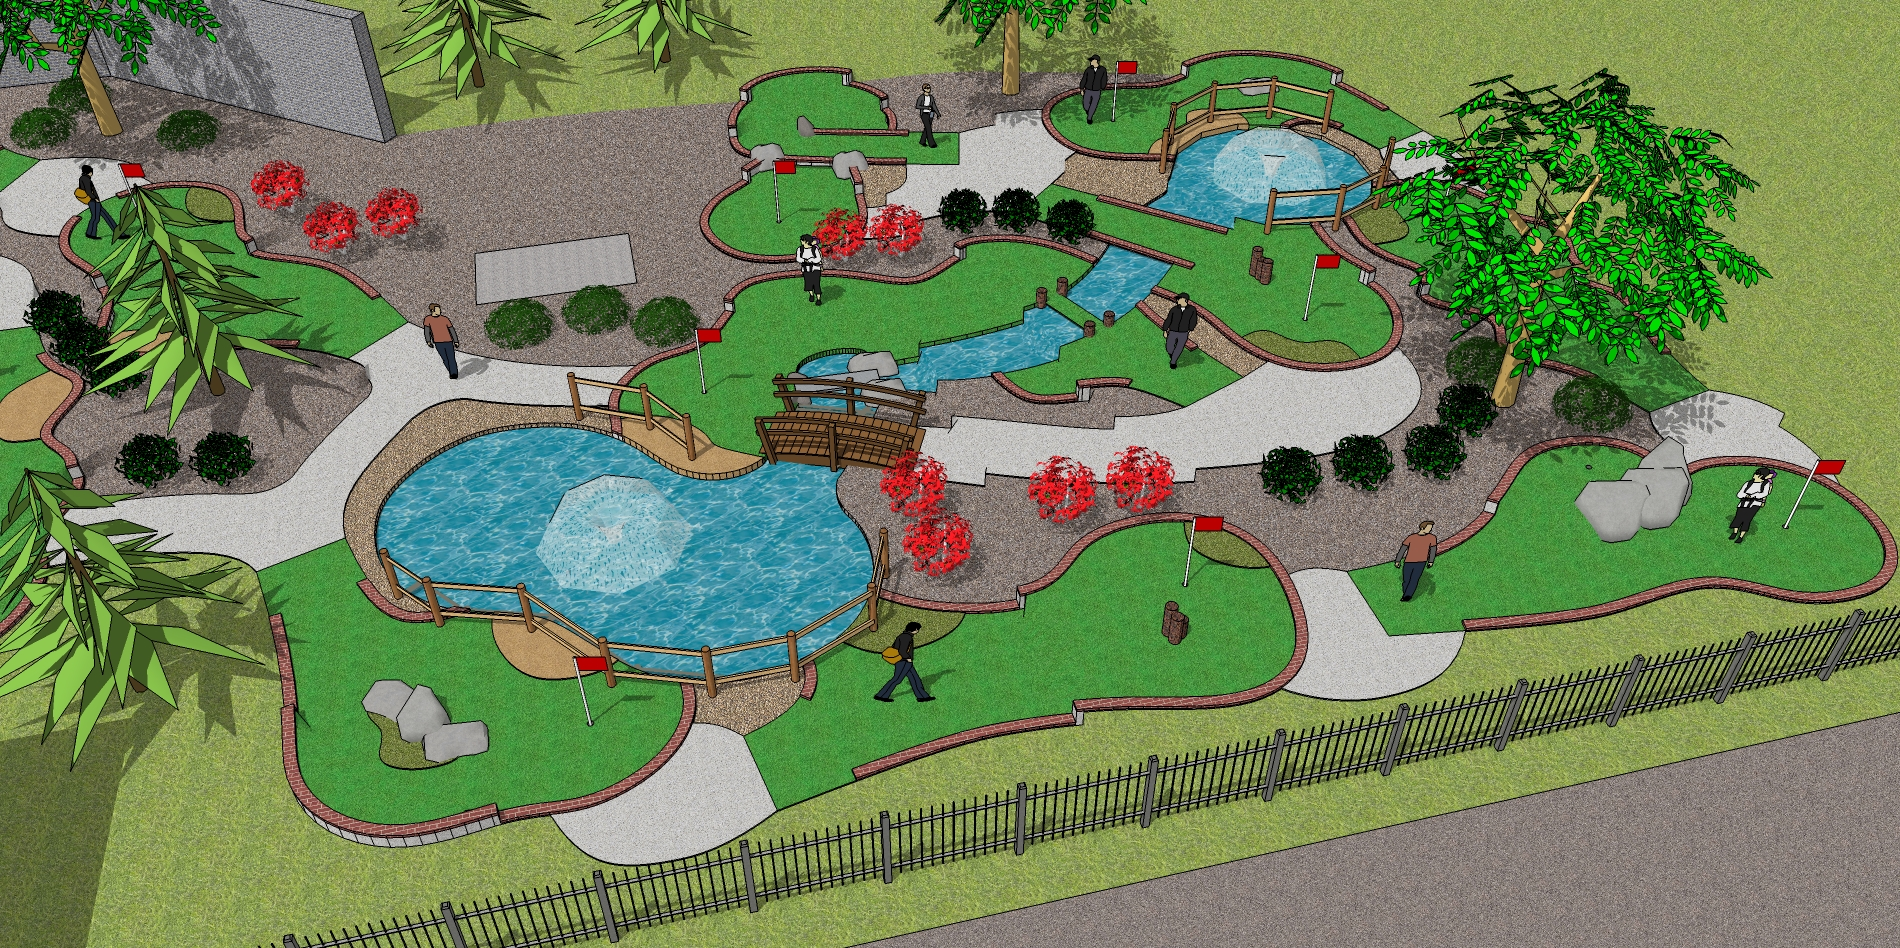 1900x948 A First In Ireland As Leading Us Company Designs Mini Golf Course